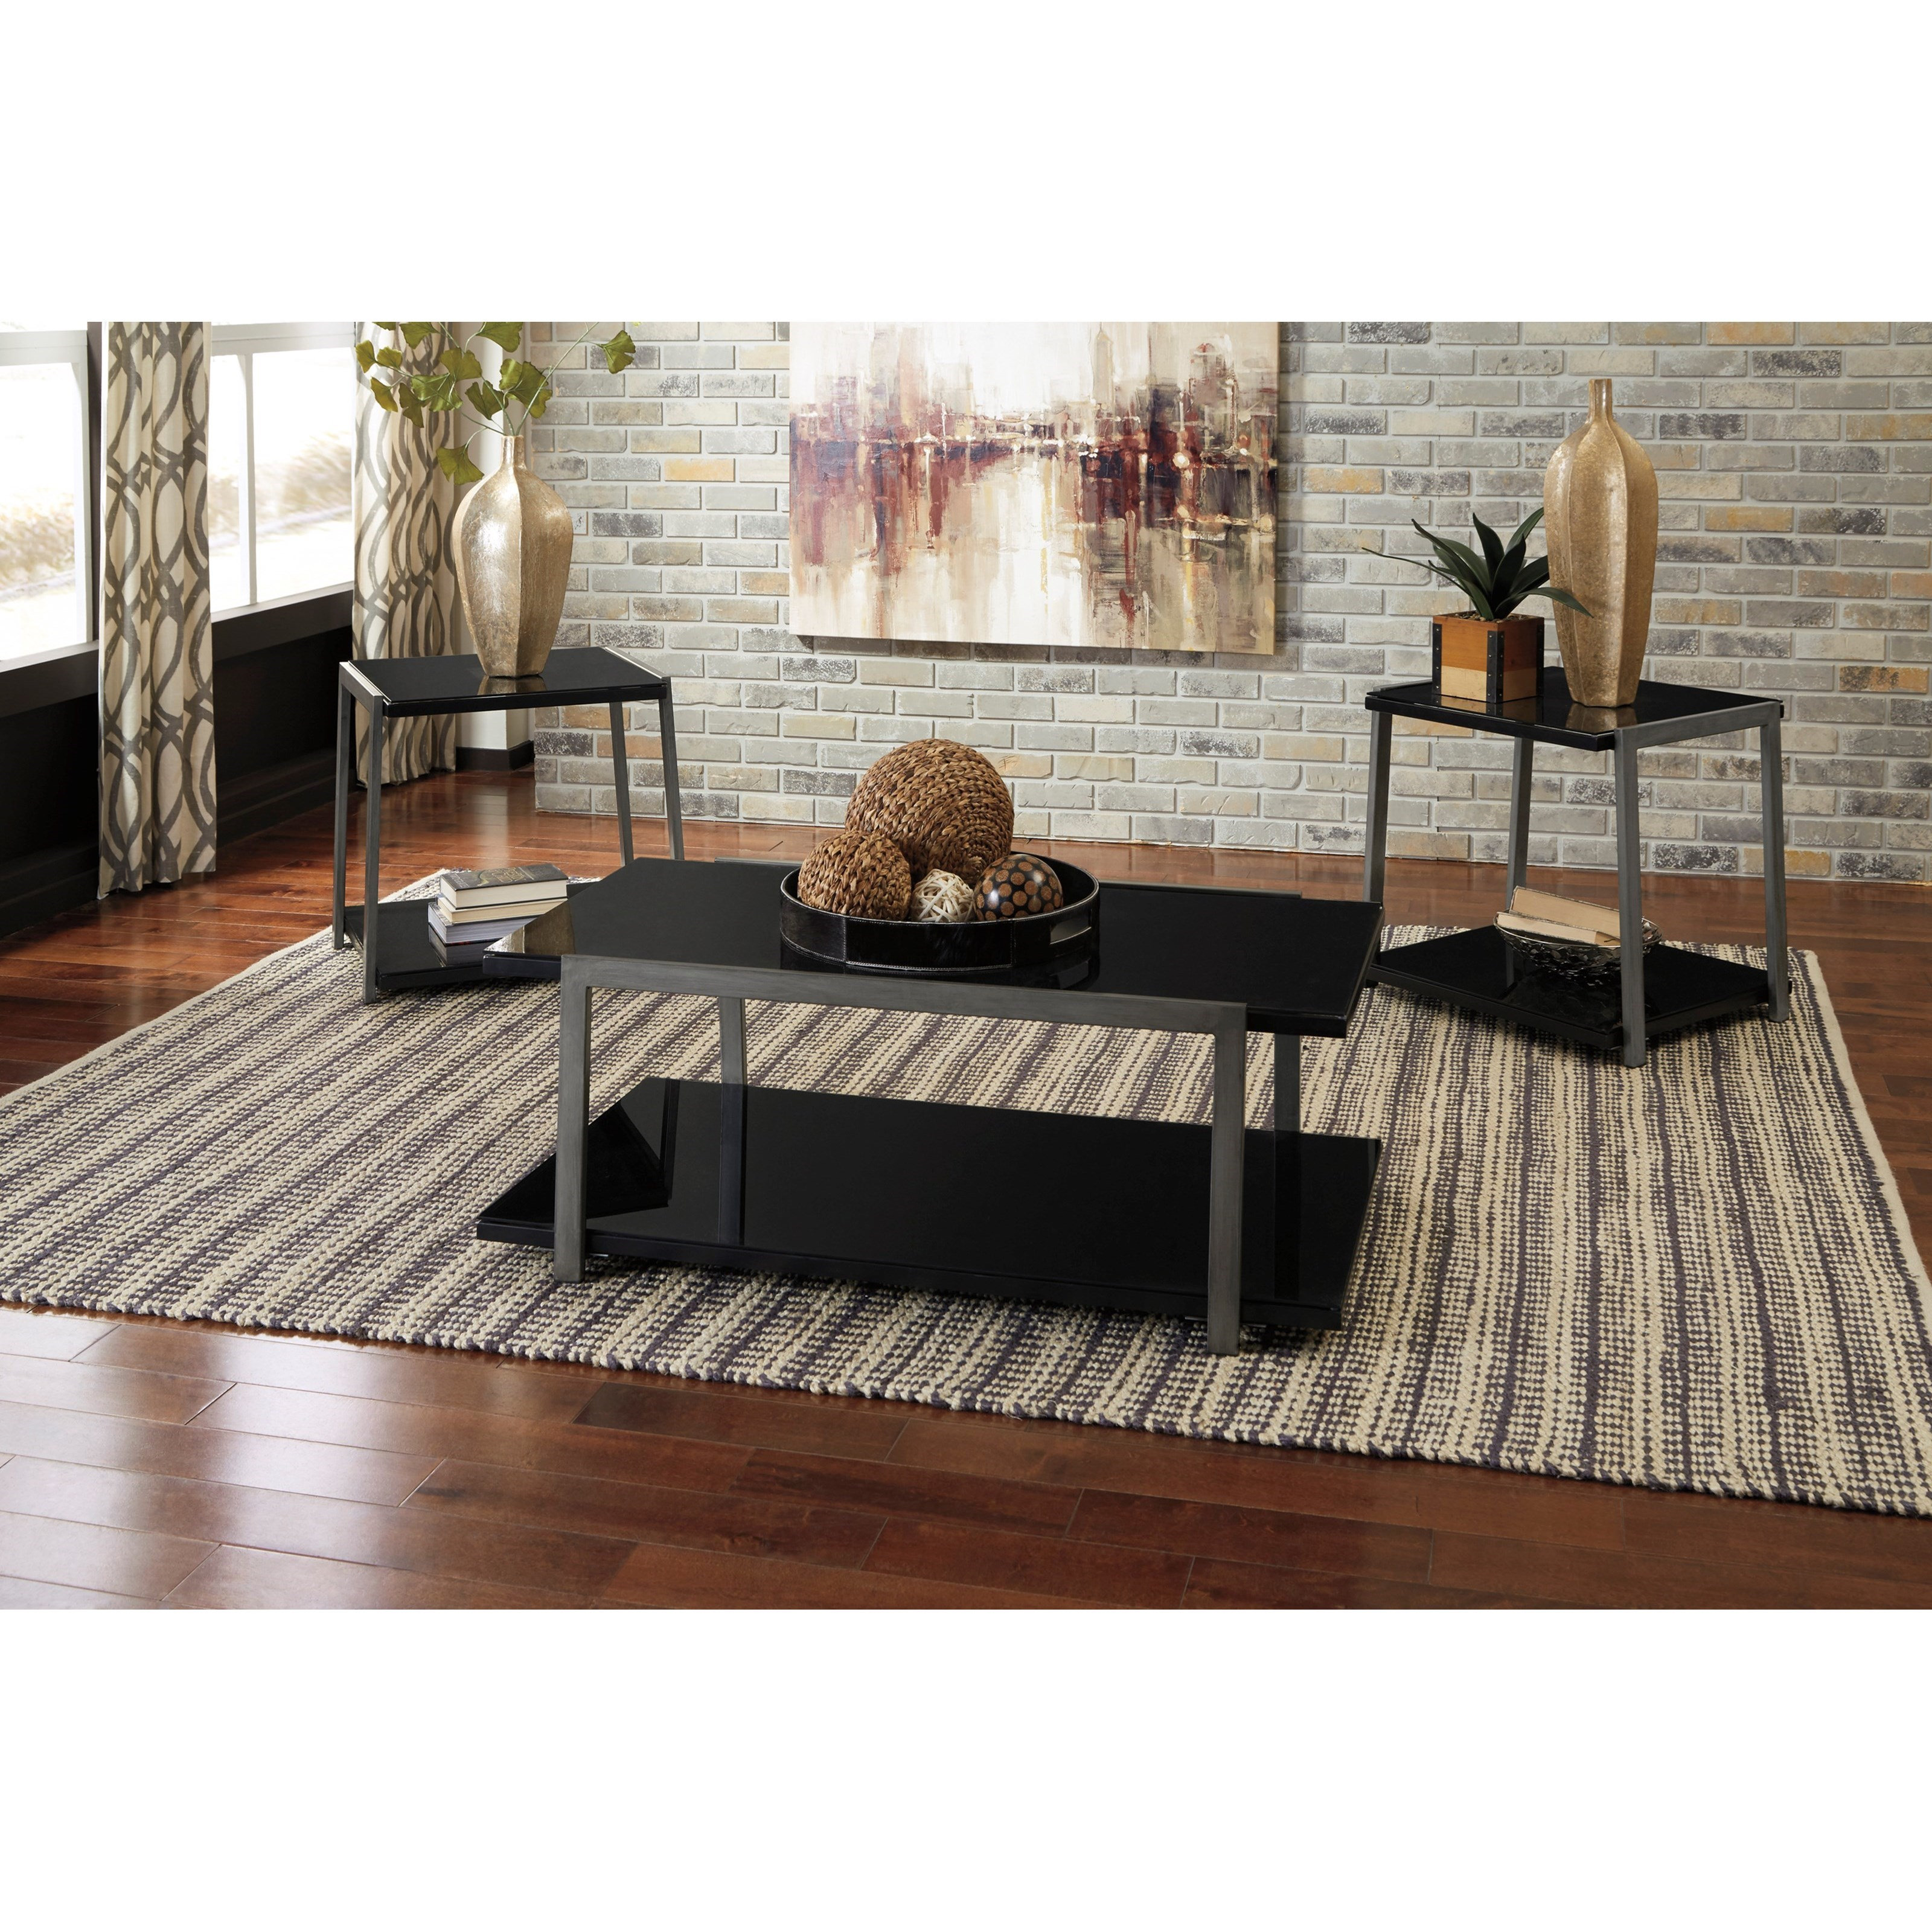 T049 13 Ashley Furniture Banilee Living Room Occasional: Signature Design By Ashley Rollynx Black Glass/Silver